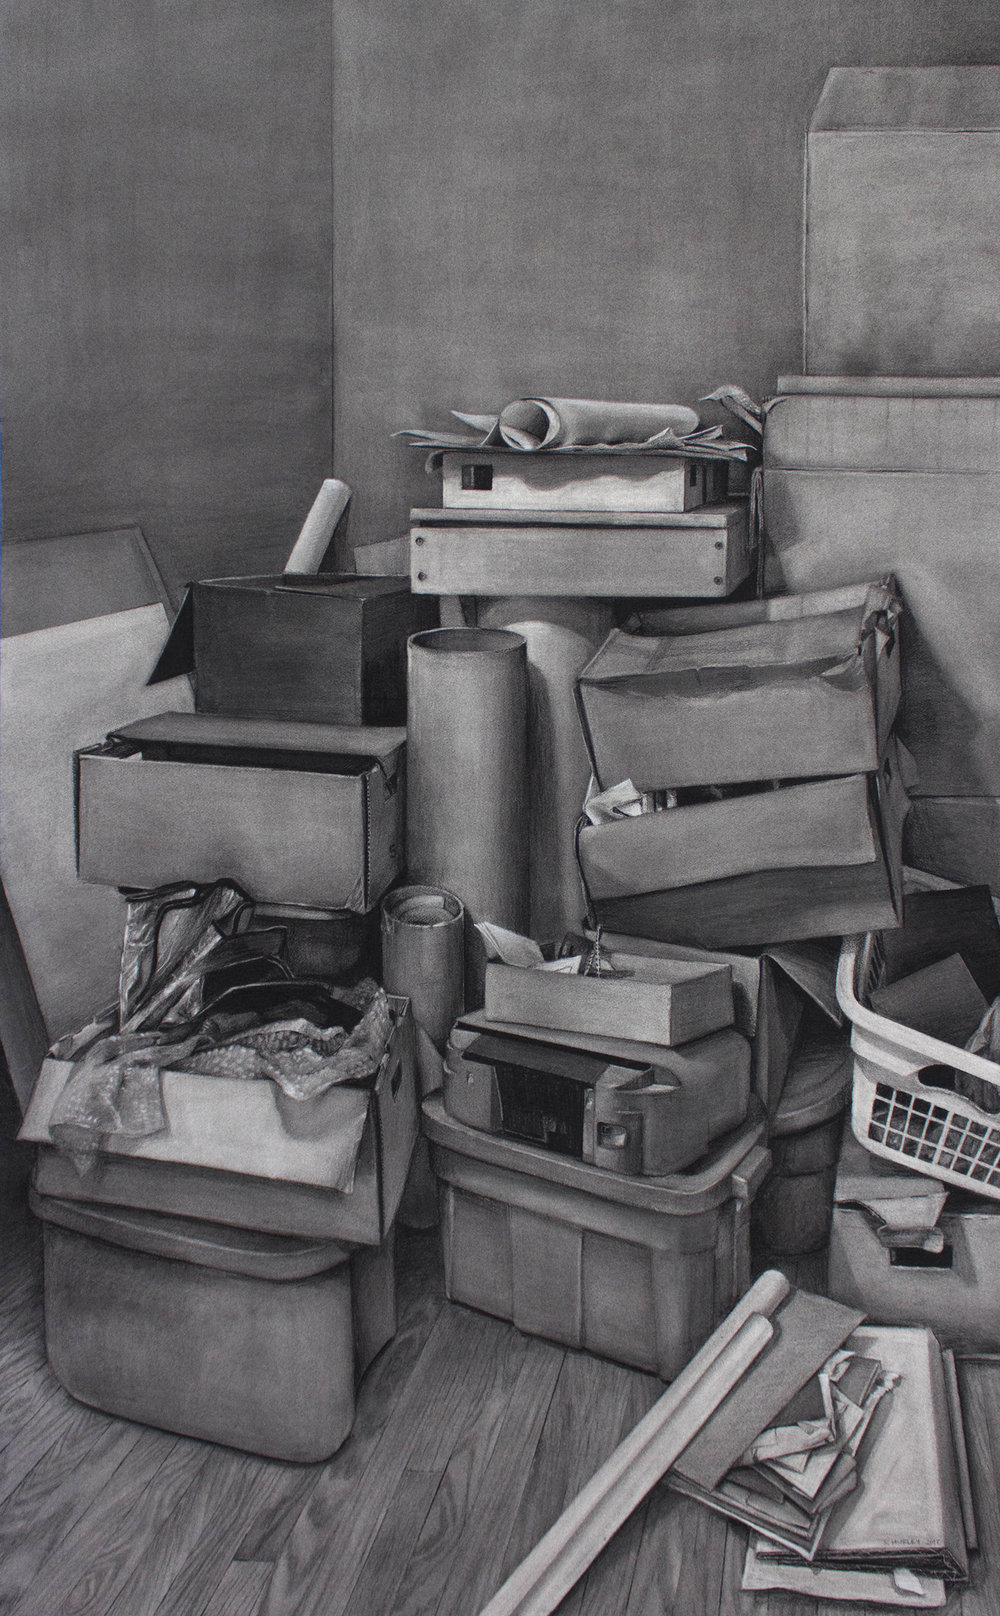 "Relocation - 67"" x 41.5"" - Charcoal - 2017"